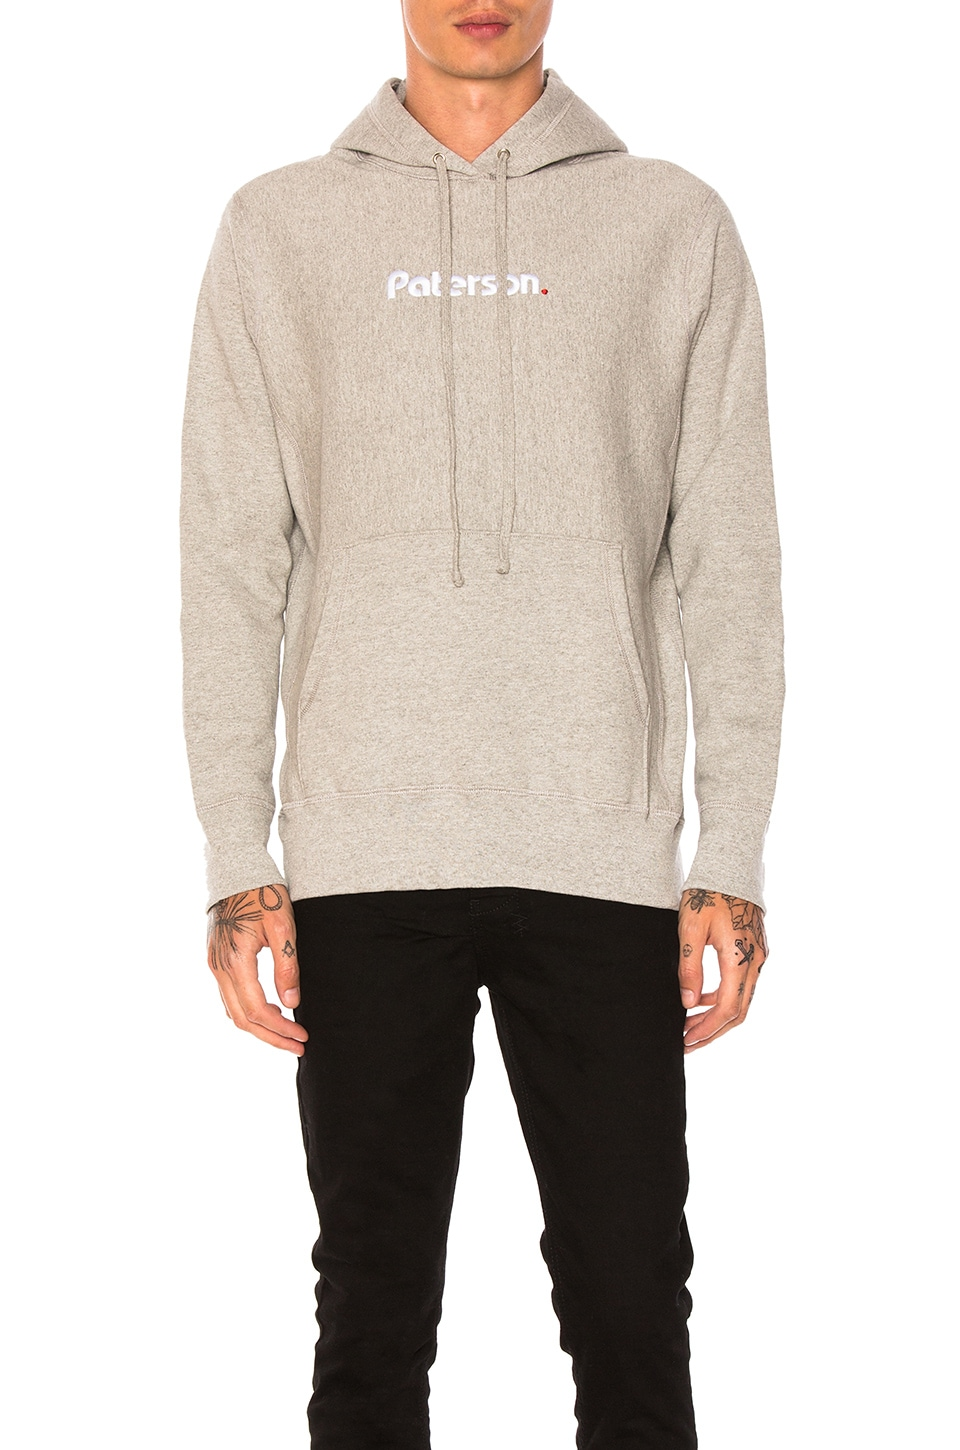 OG Logo Hoodie by Paterson